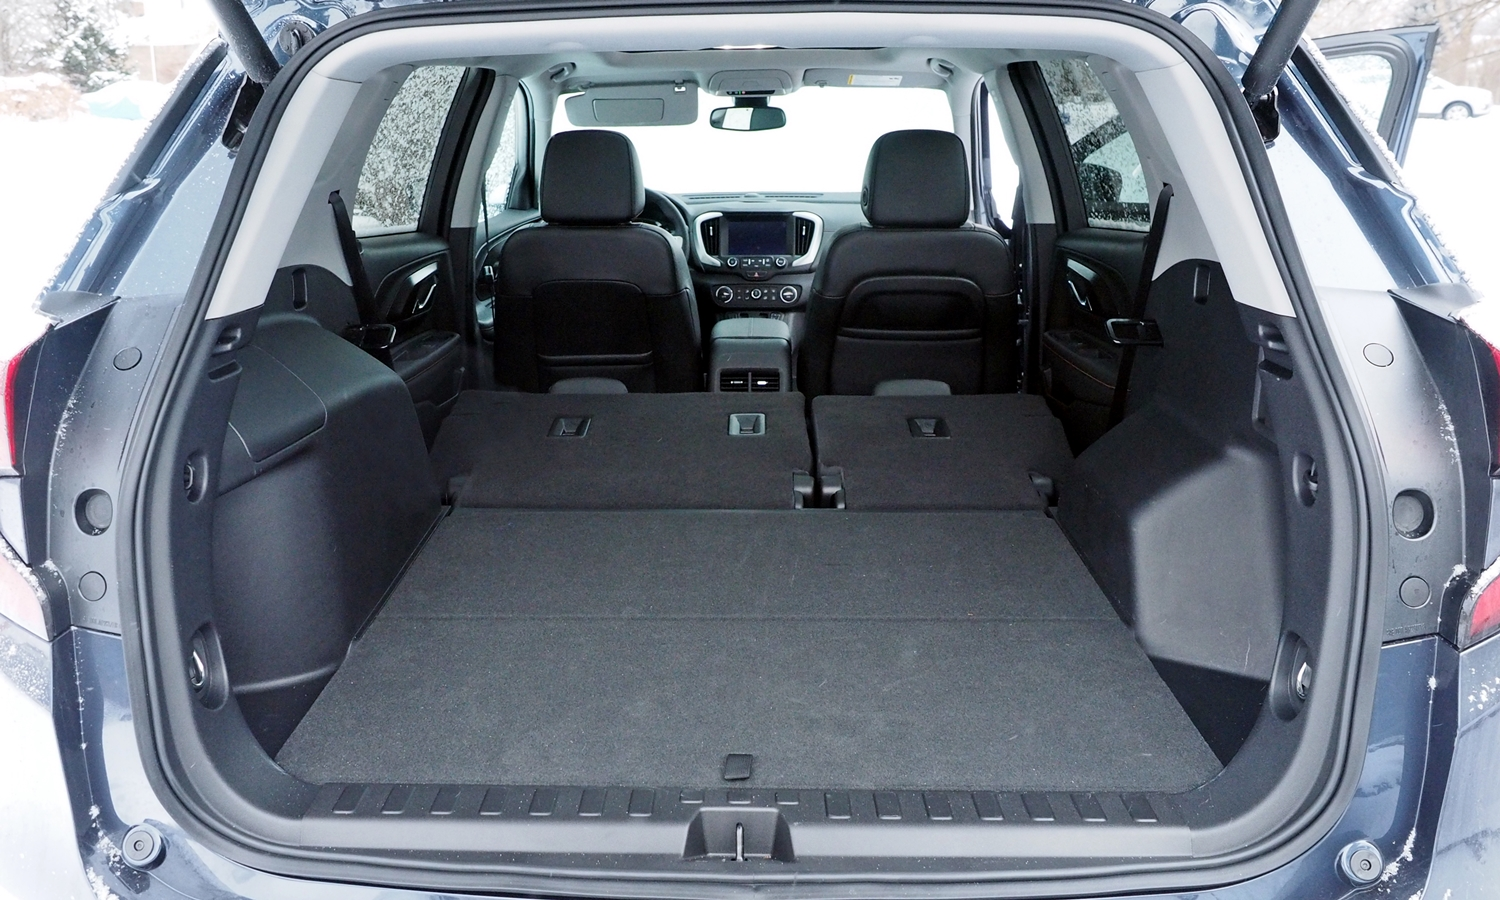 GMC Terrain Photos: 2018 GMC Terrain cargo area second row seat folded